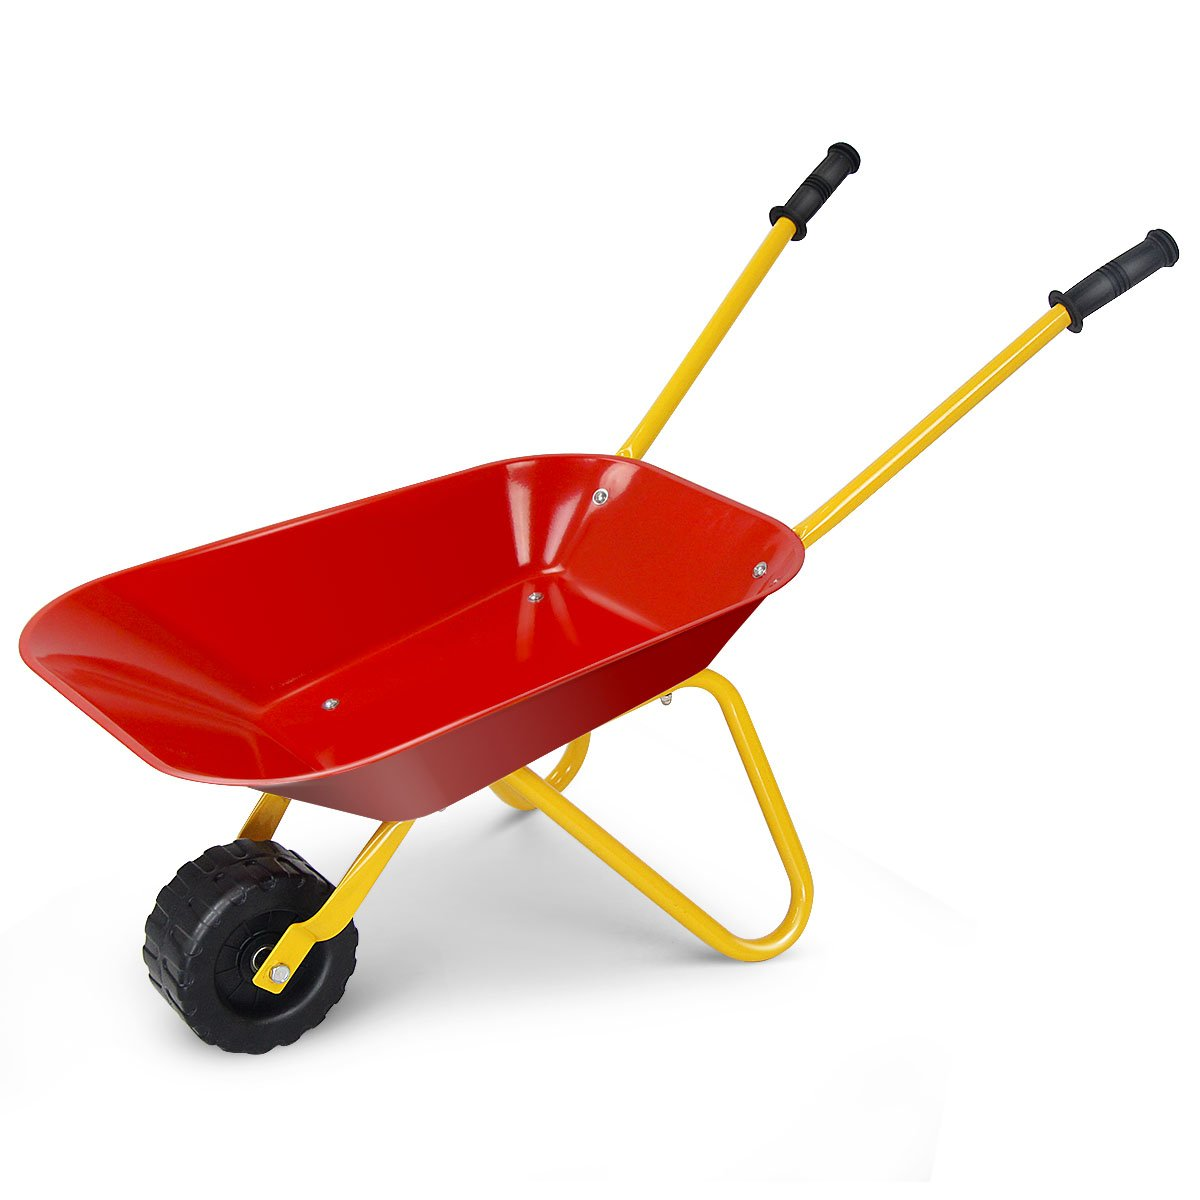 Costzon Kids Metal Wheelbarrow, Yard Rover Steel Tray, Metal Construction Toys Kart, Tote Dirt/Leaves/Tools in Garden for Toddlers, Red by Costzon